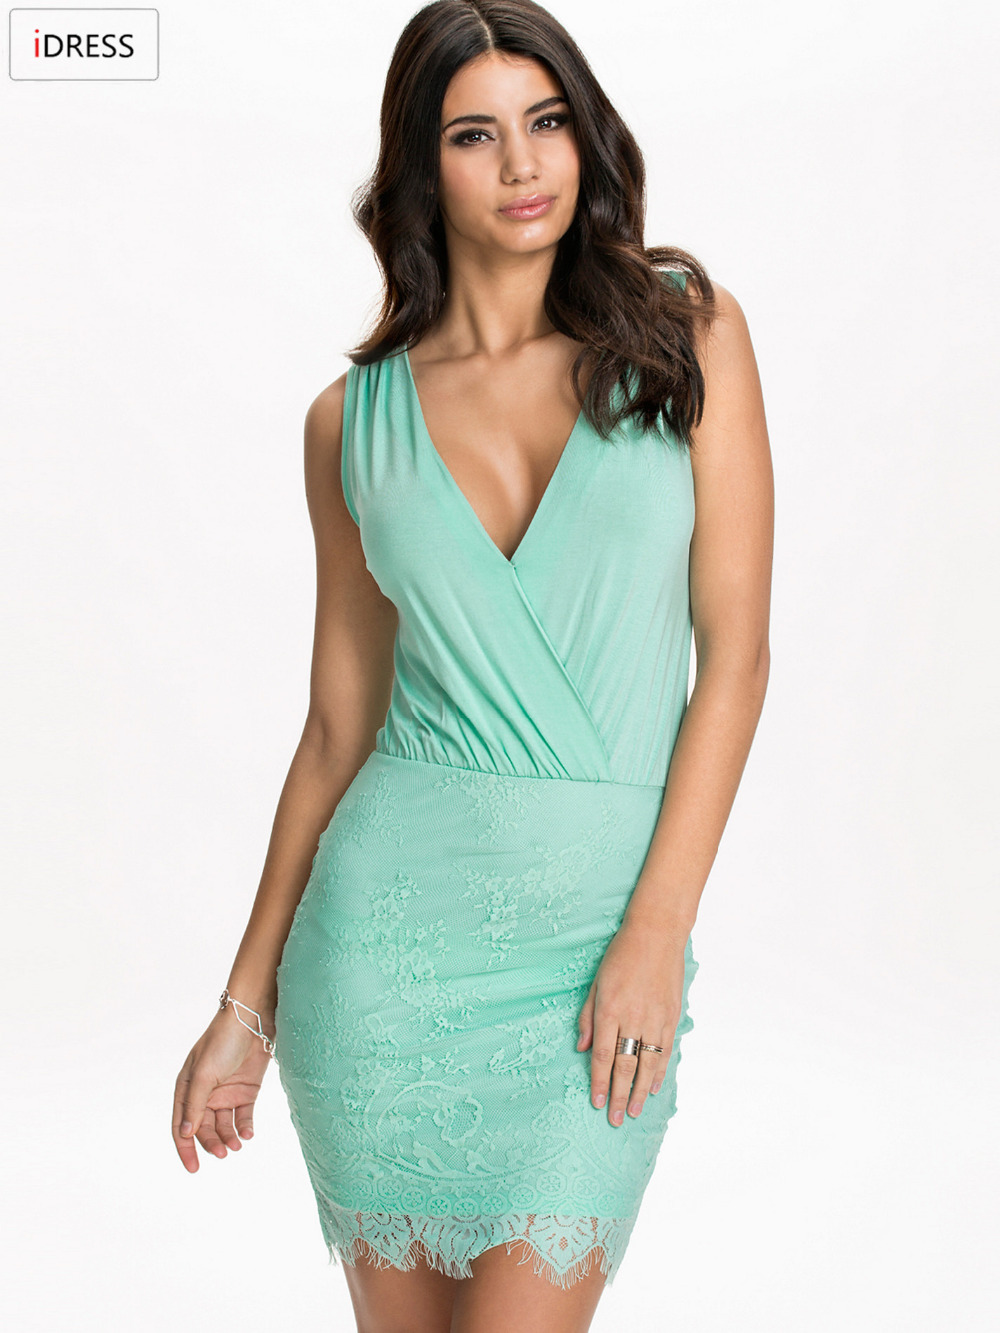 Funky Night Club Party Dresses Images - All Wedding Dresses ...